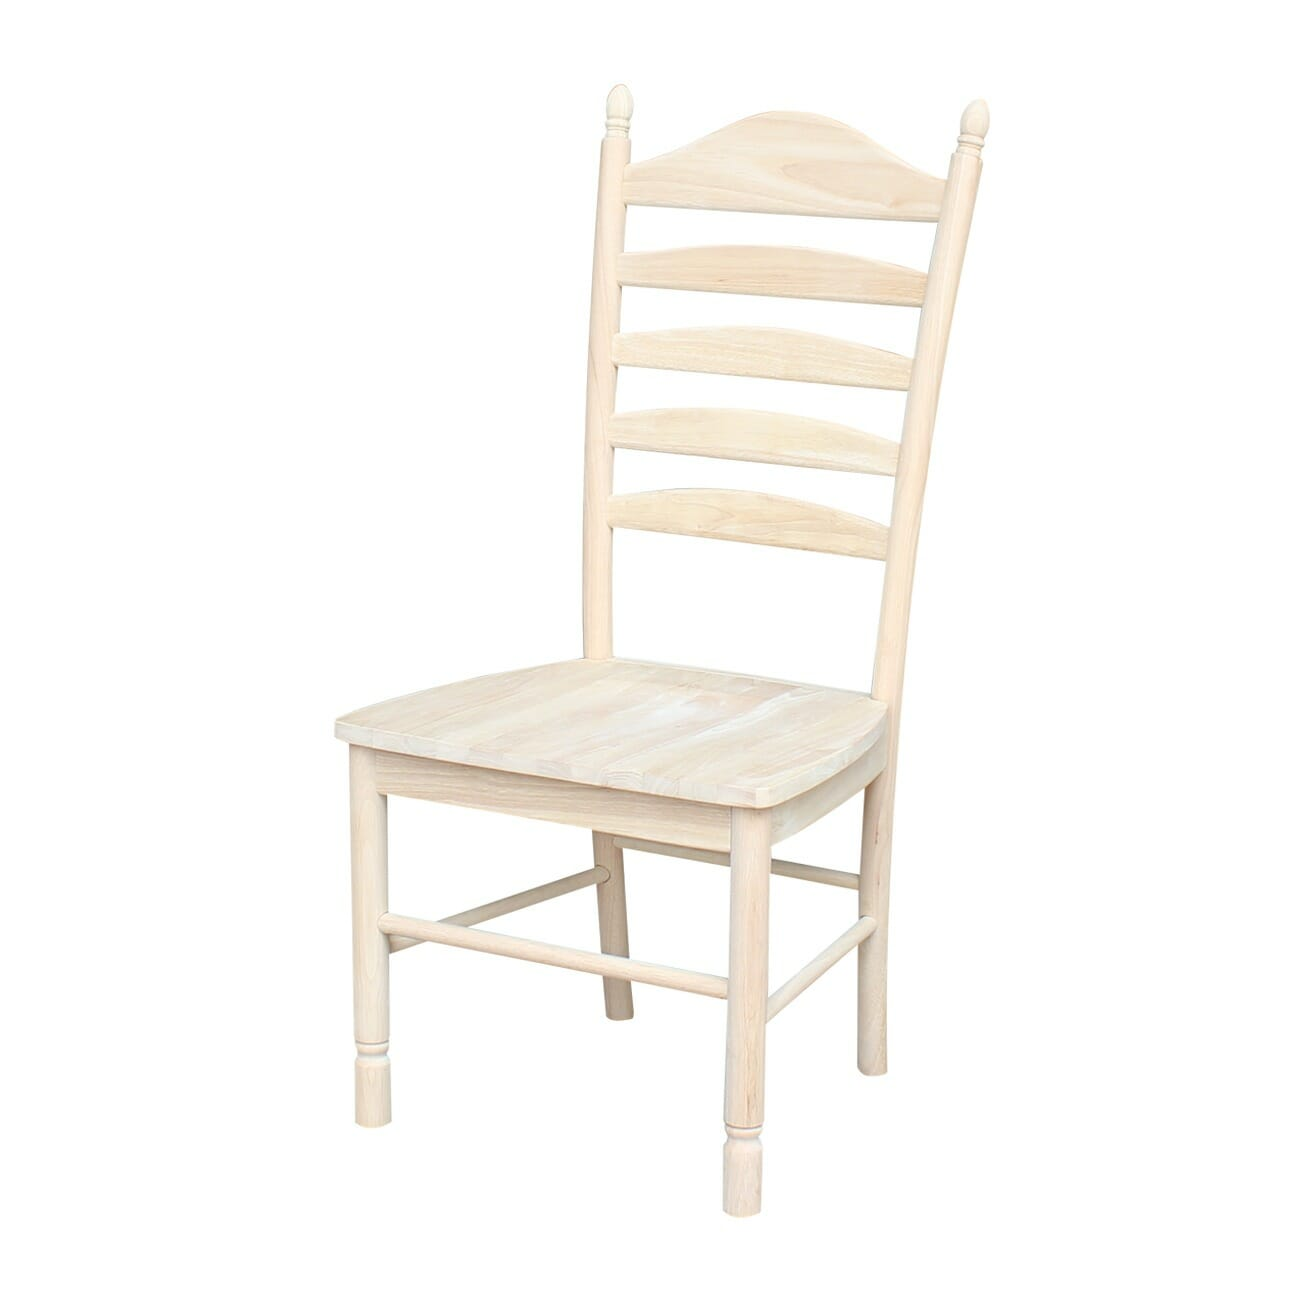 unfinished ladder back chairs steel chair keychain c 271 bedford 2 pack w free shipping